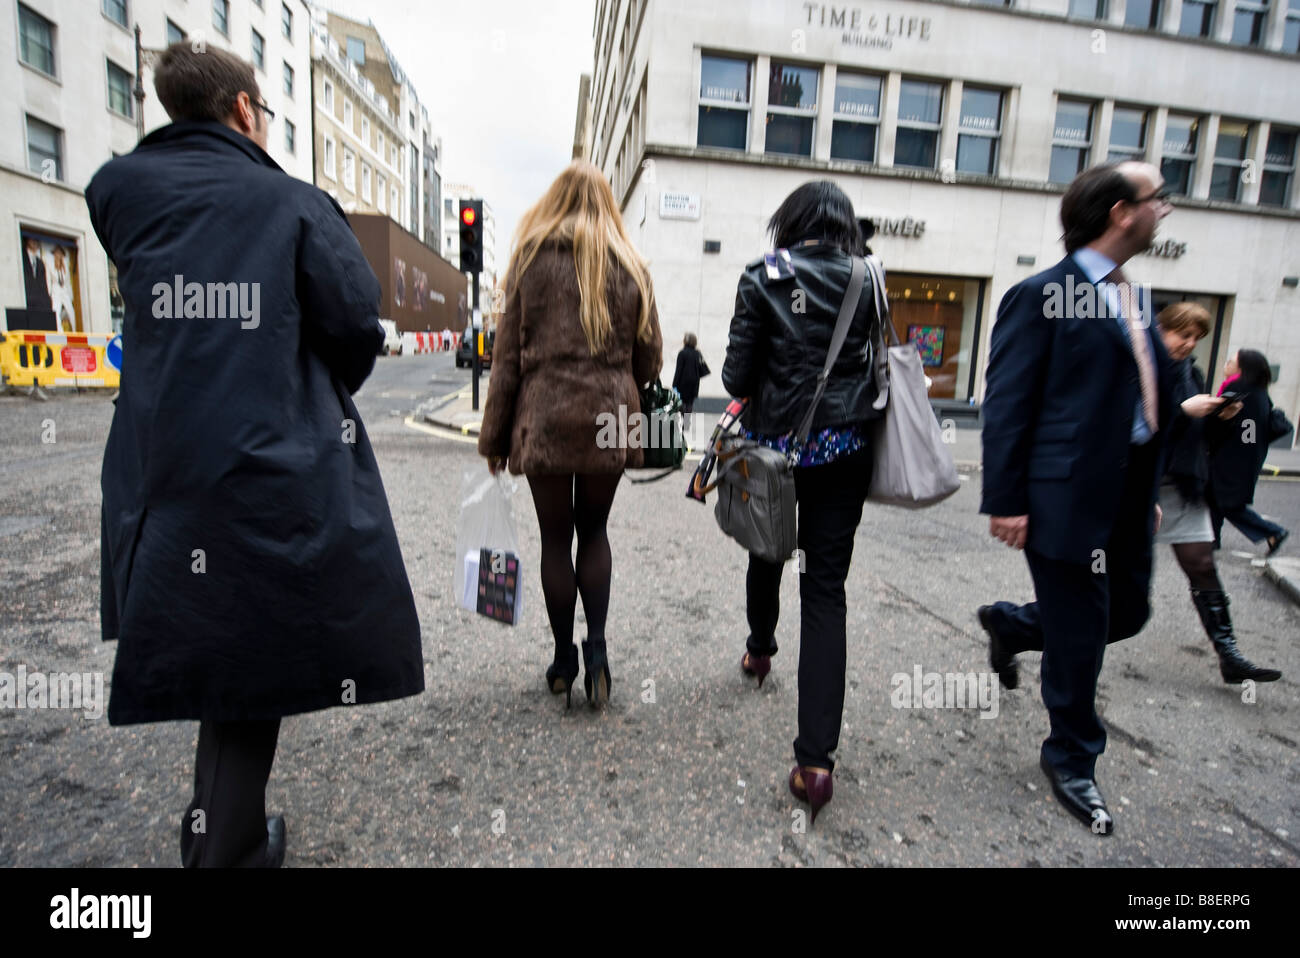 Shoppers and passers by in Central  London - Stock Image